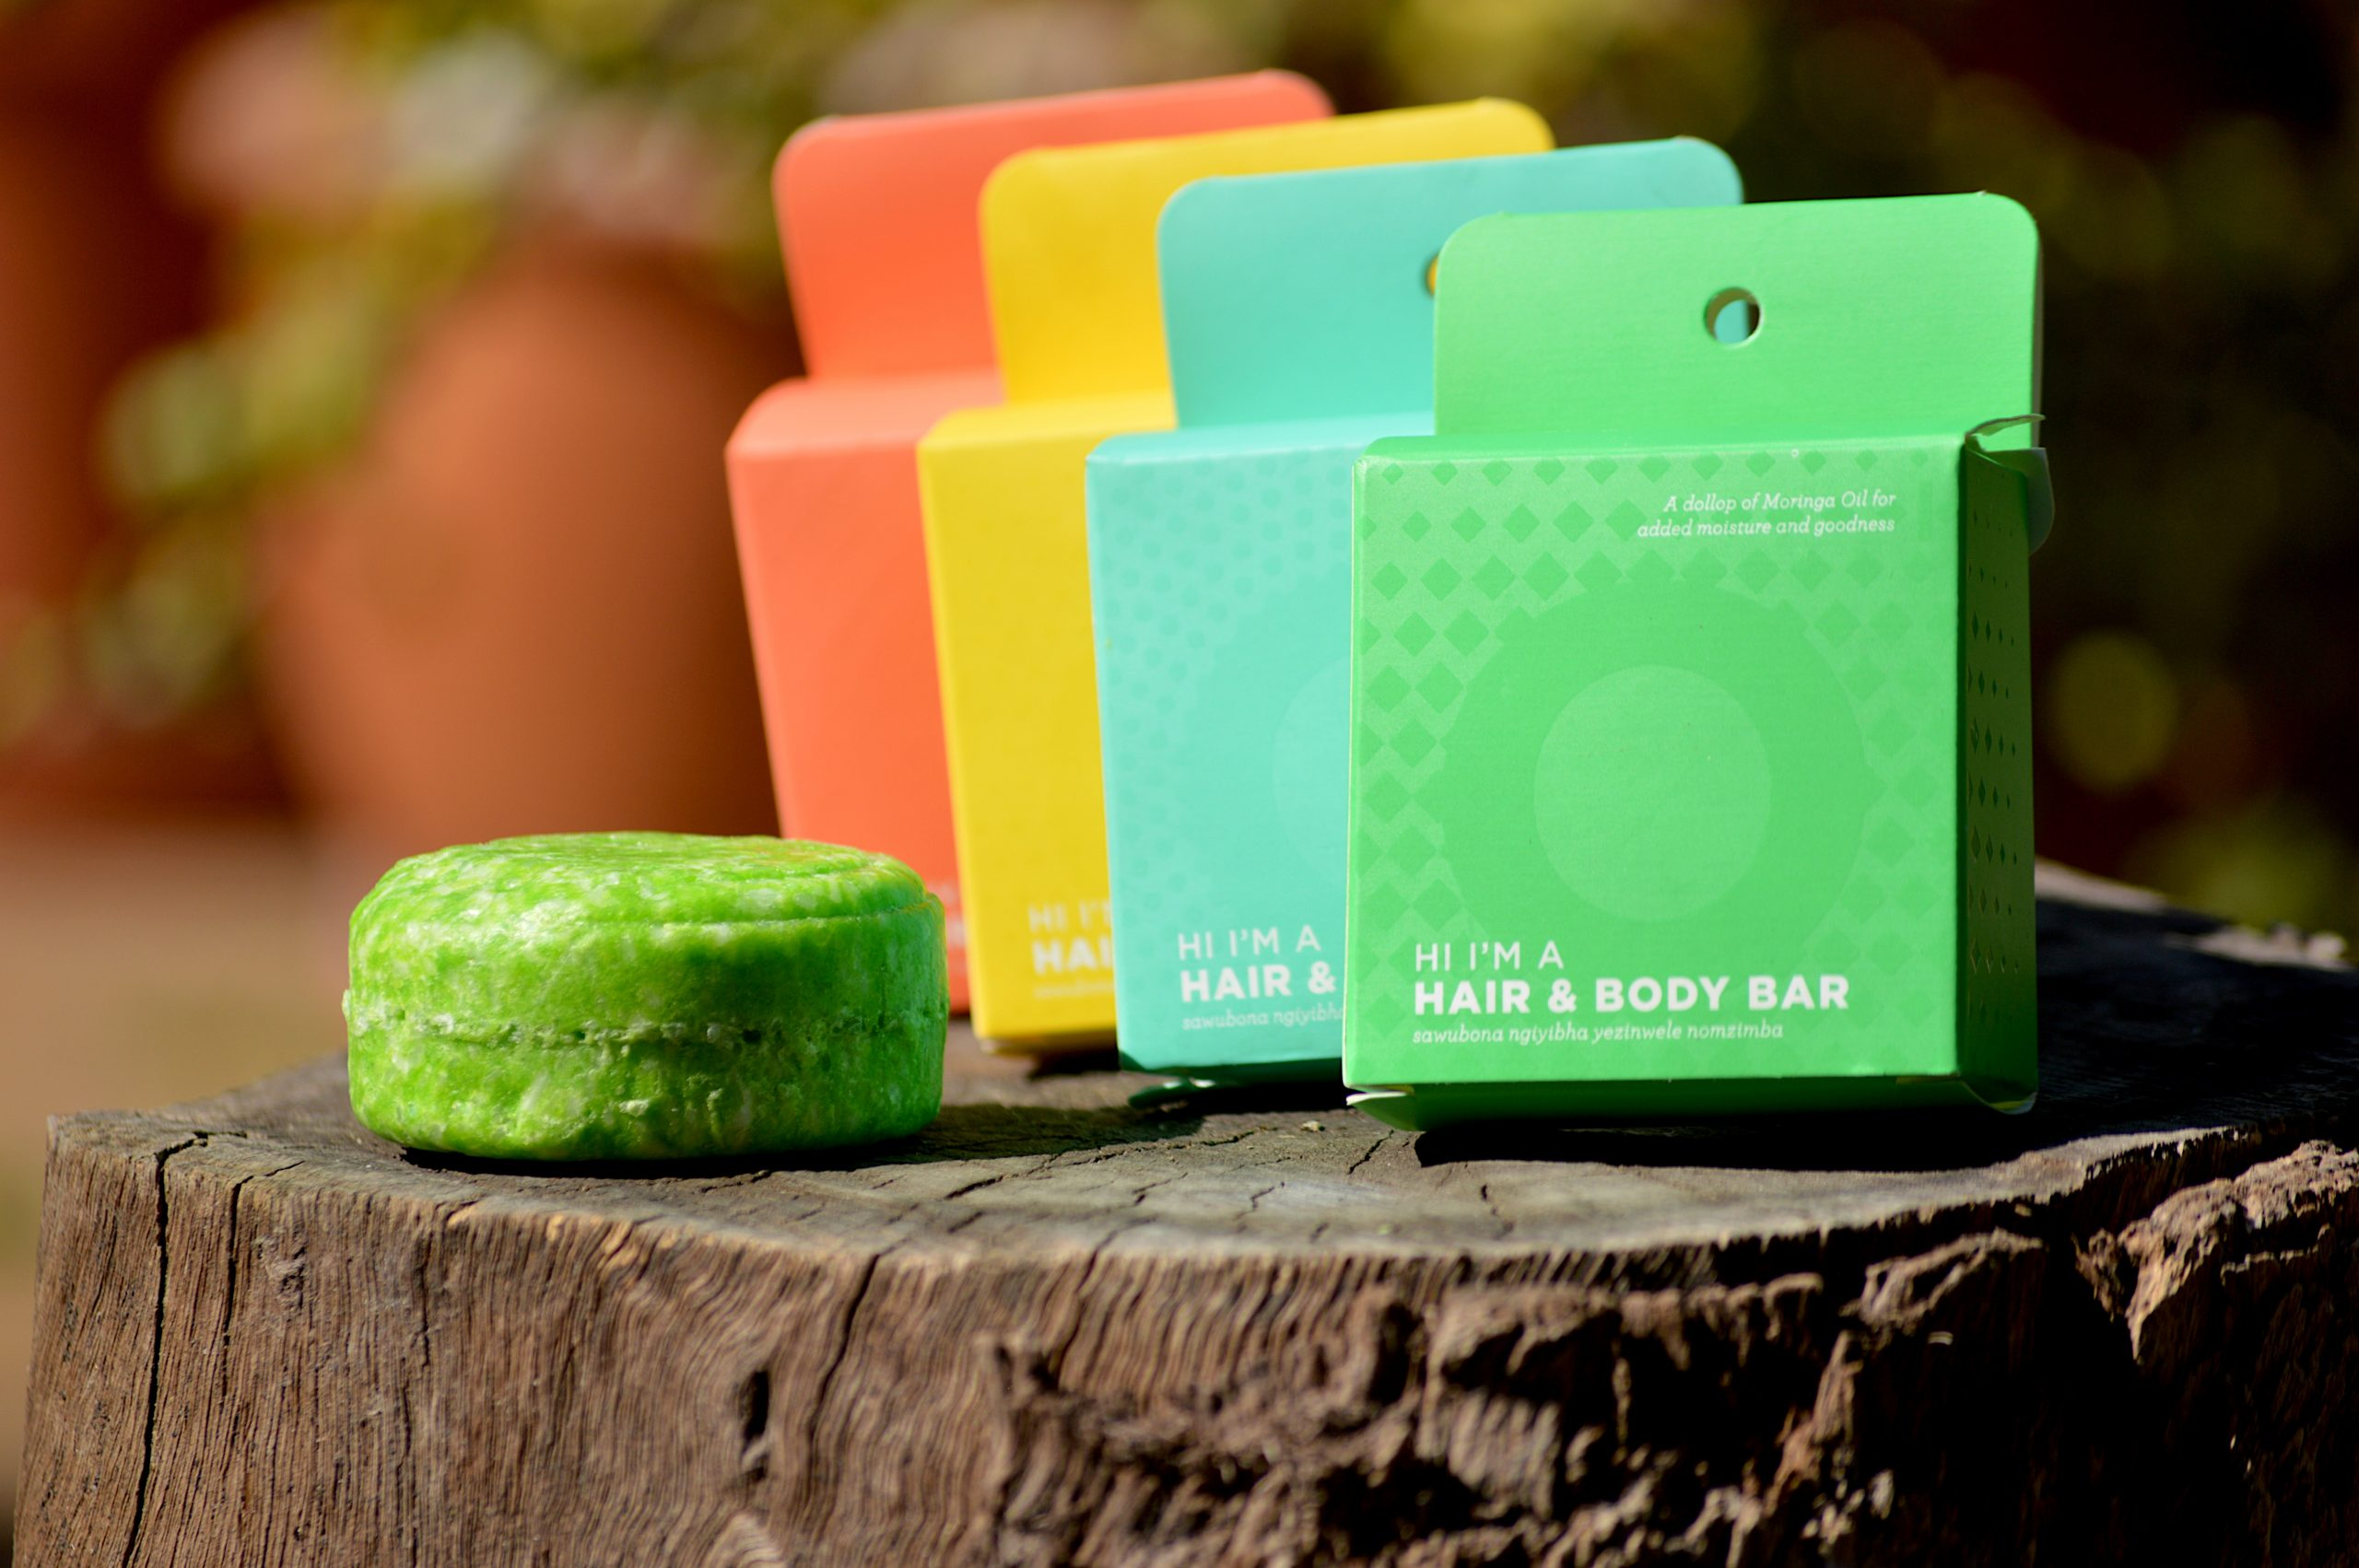 Finding the Best Shampoo Bar for an Eco-Friendly Option